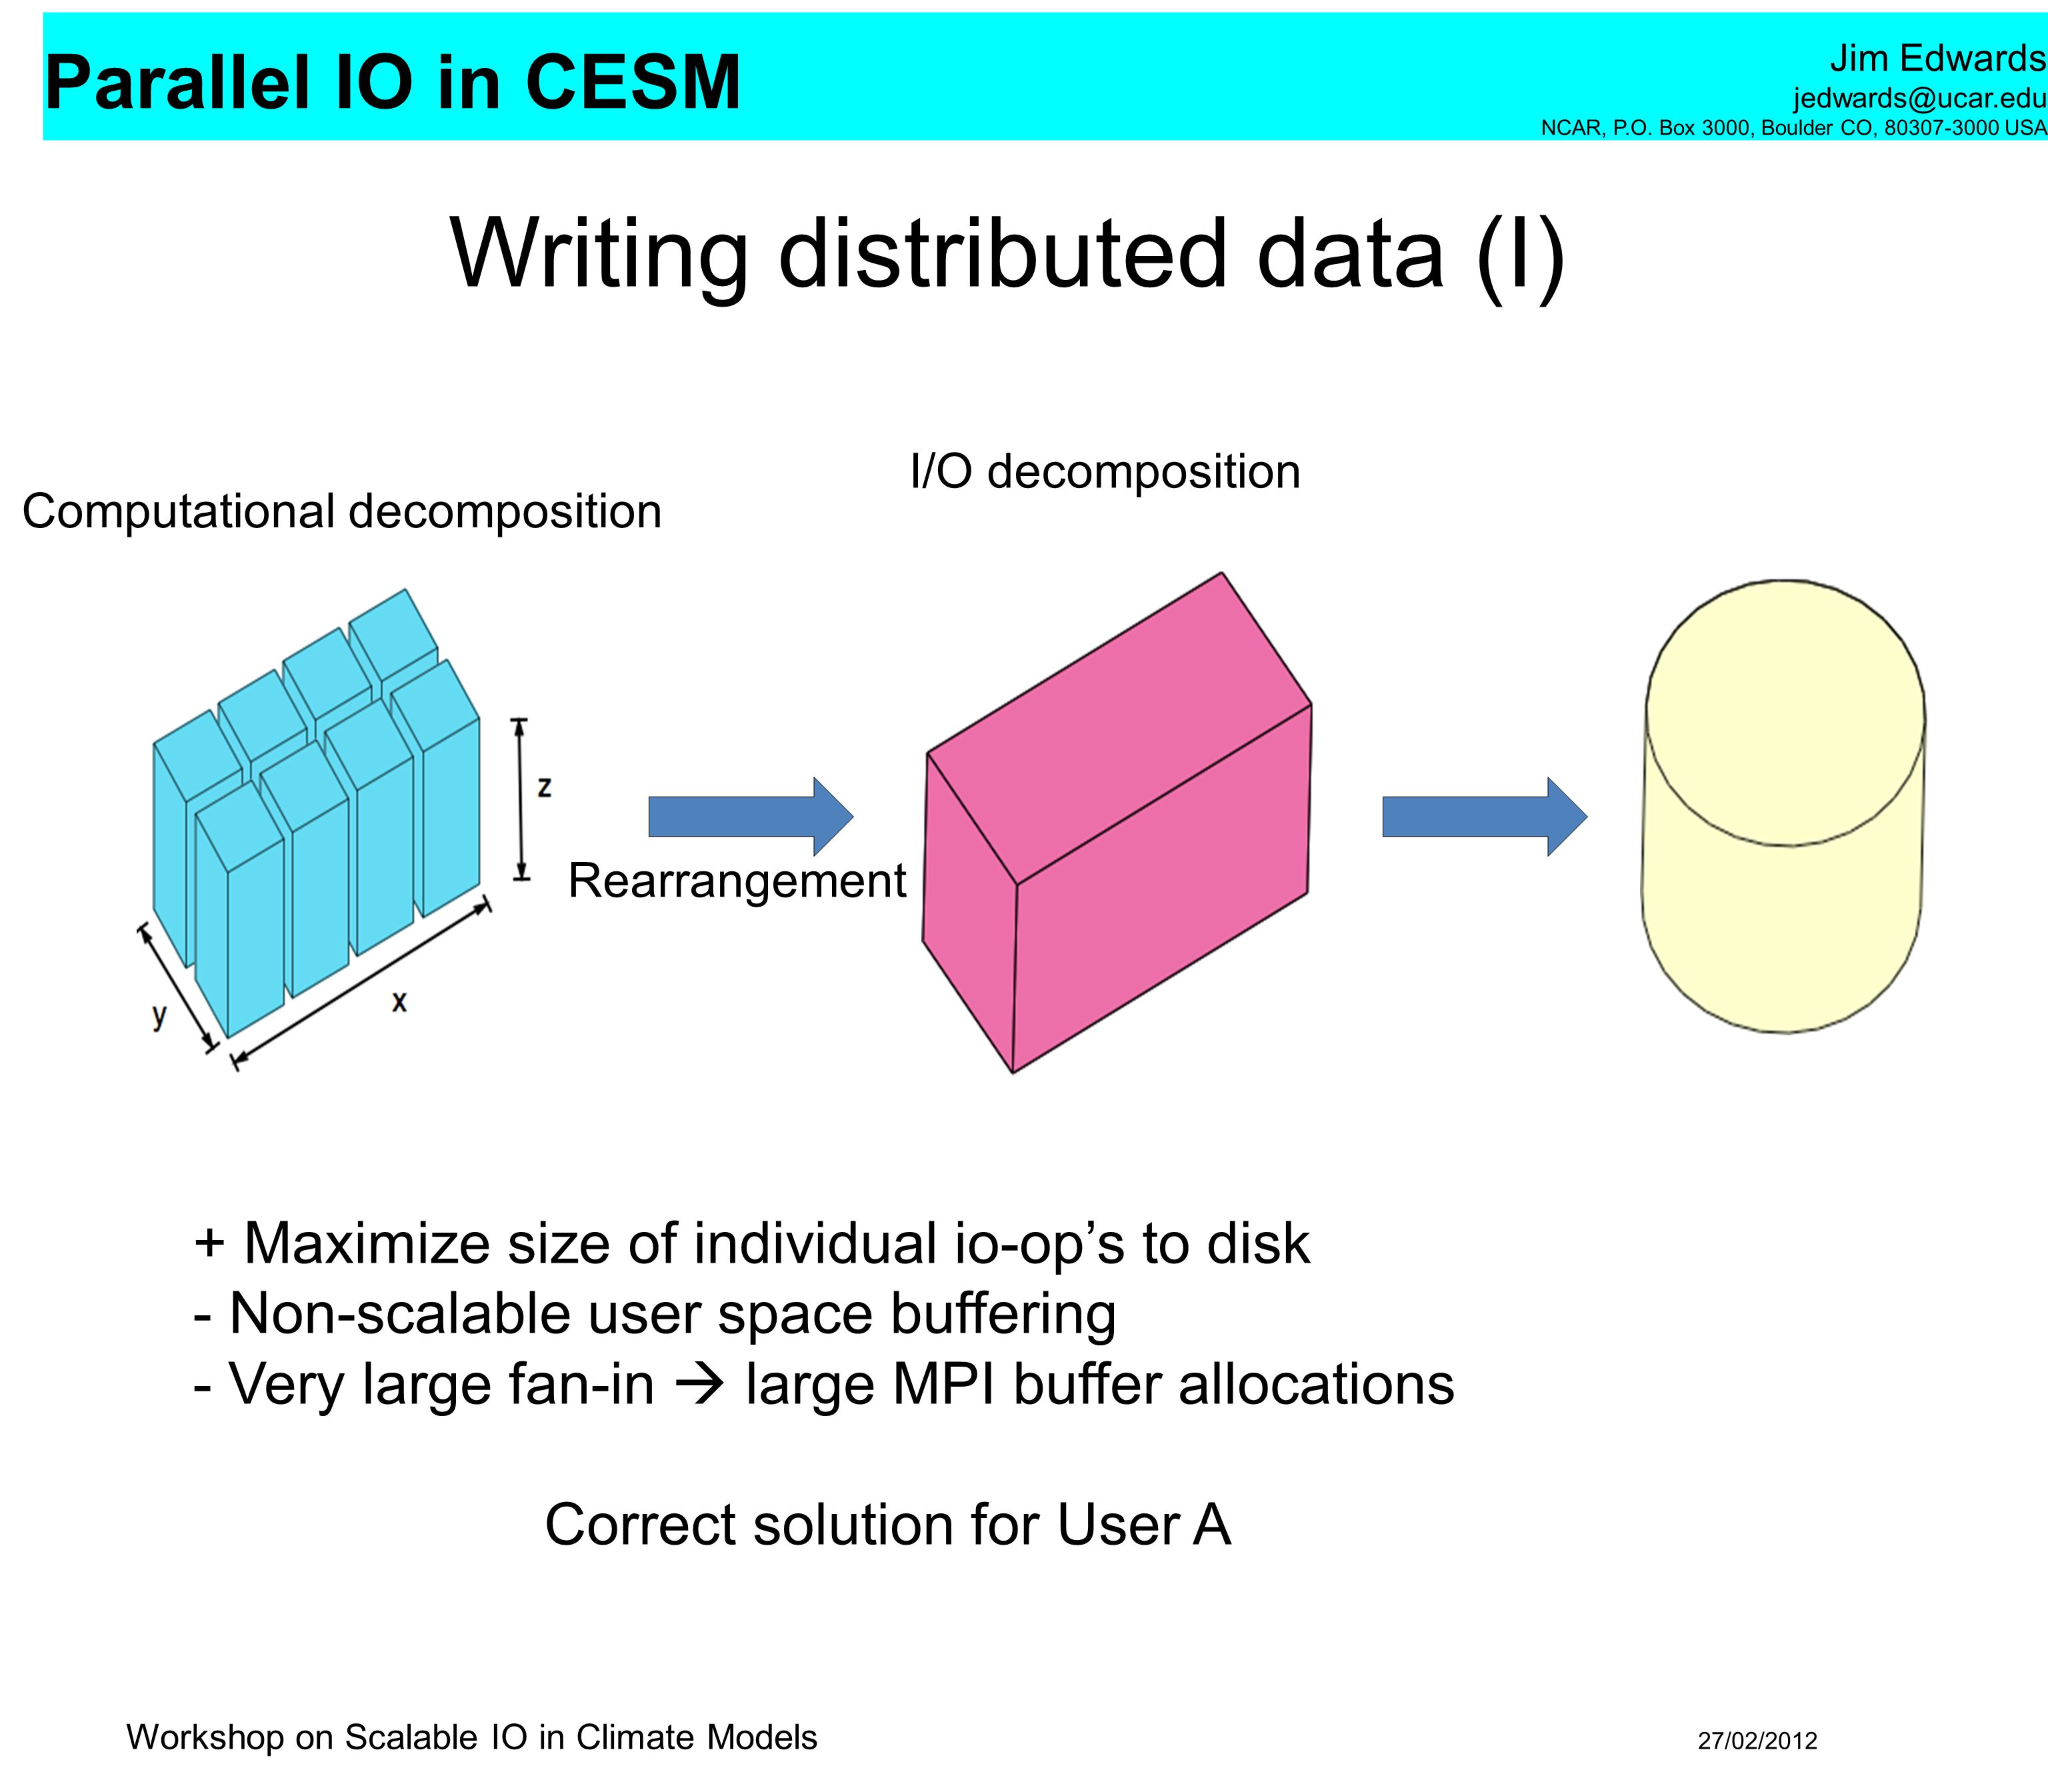 Writing distributed data (I)